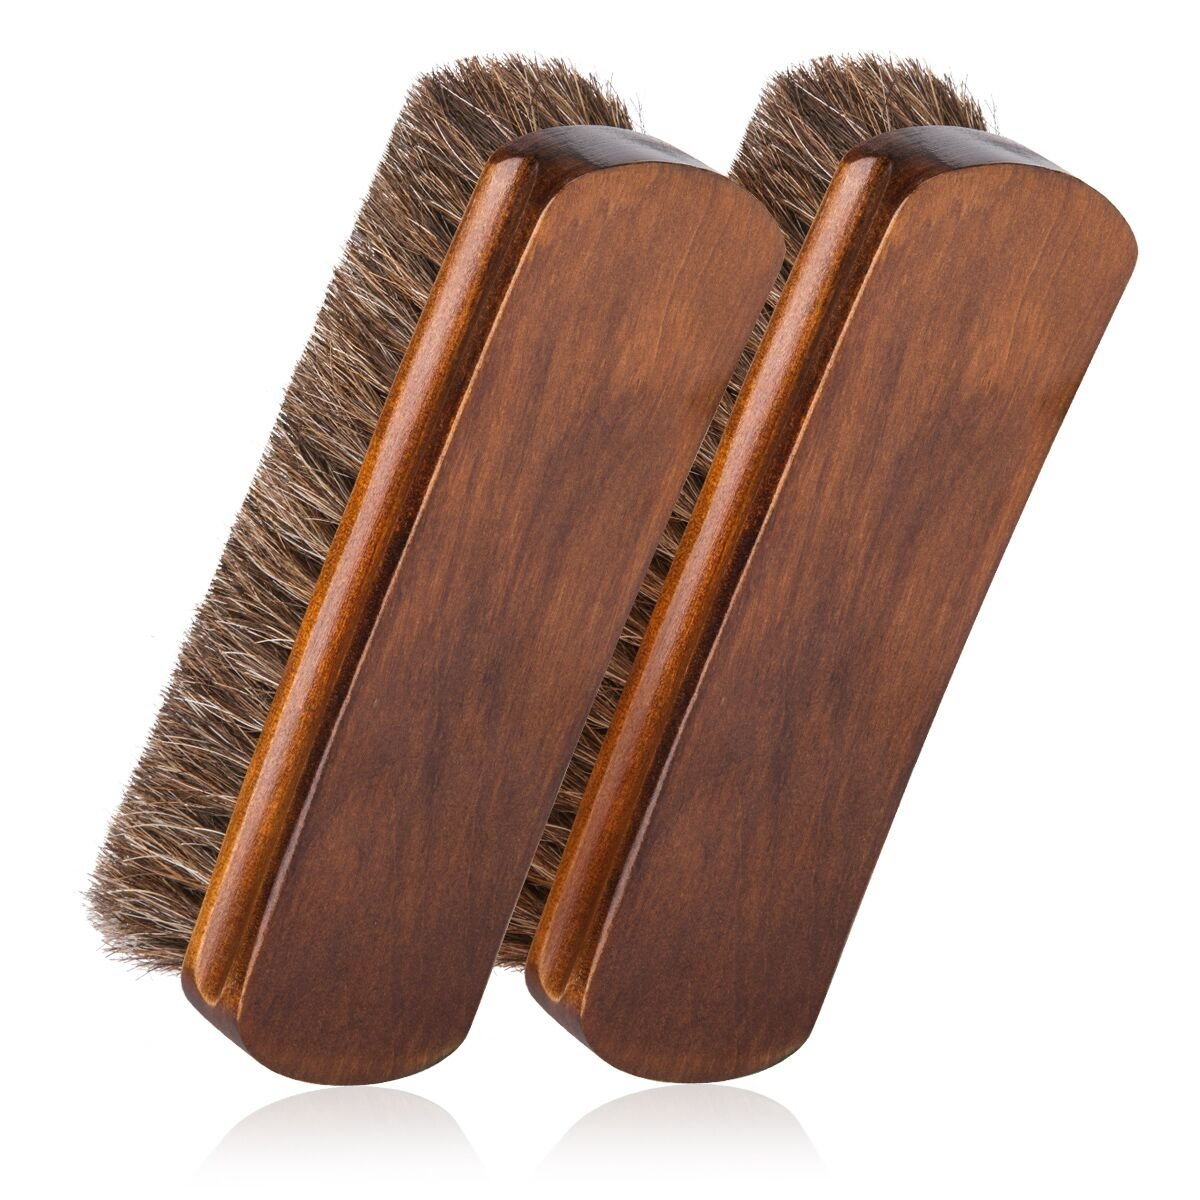 6.7'' Horsehair Shoe Brushes with Horse Hair Bristles for Boots, Shoes & Other Leather Care, 2 Pack (Brown)